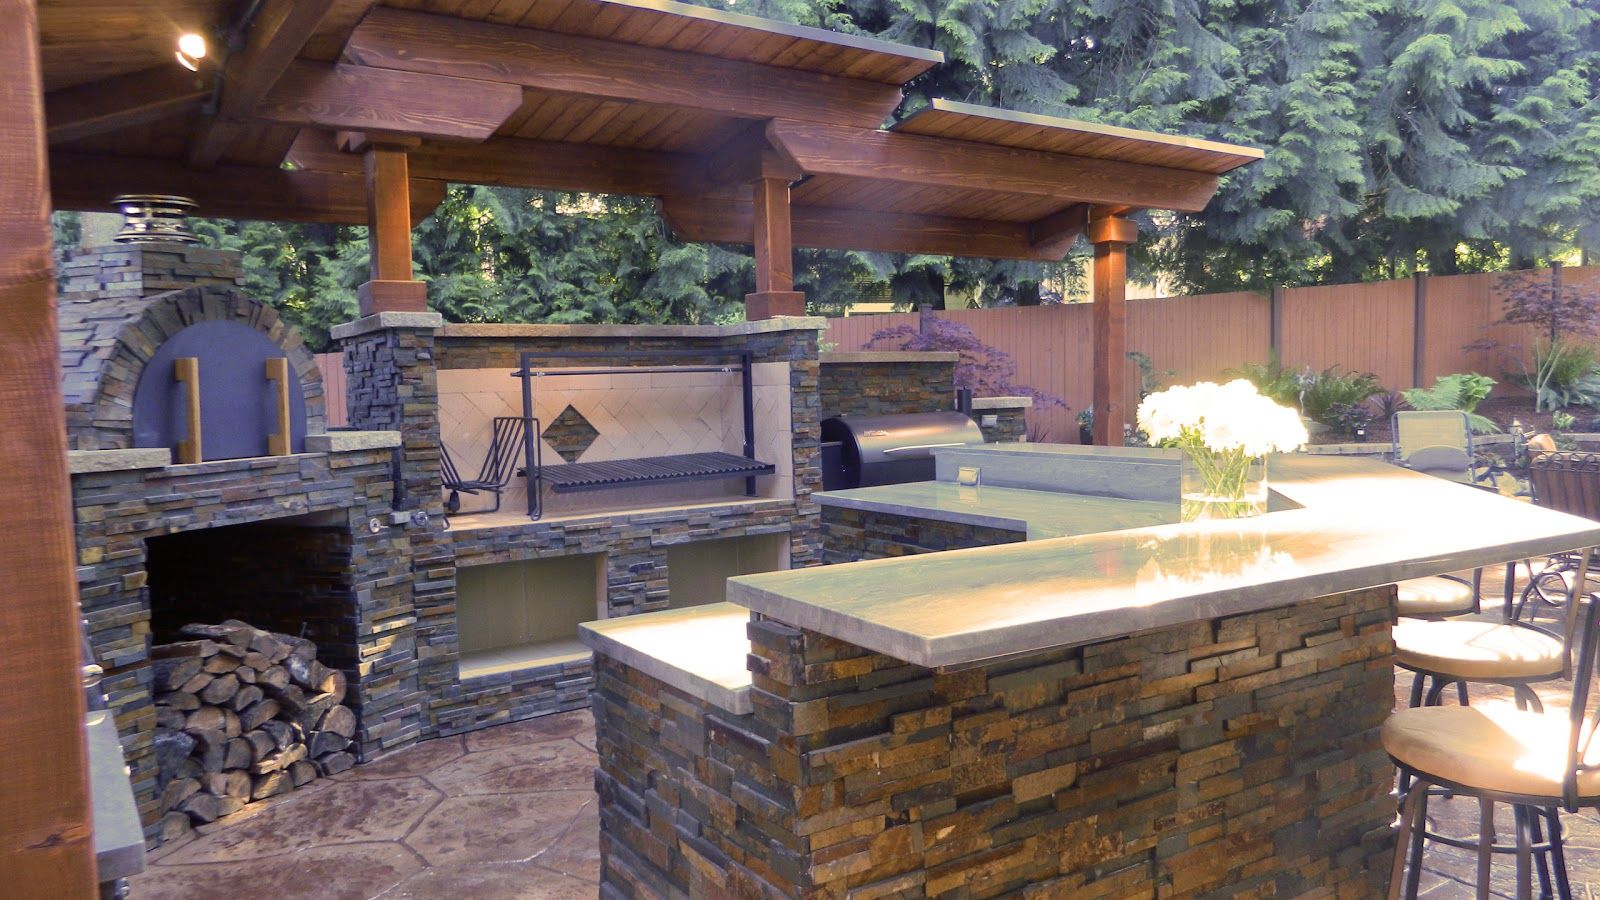 Built in grill and smoker outside bar outdoor kitchen - Outdoor kitchen pizza oven design ...